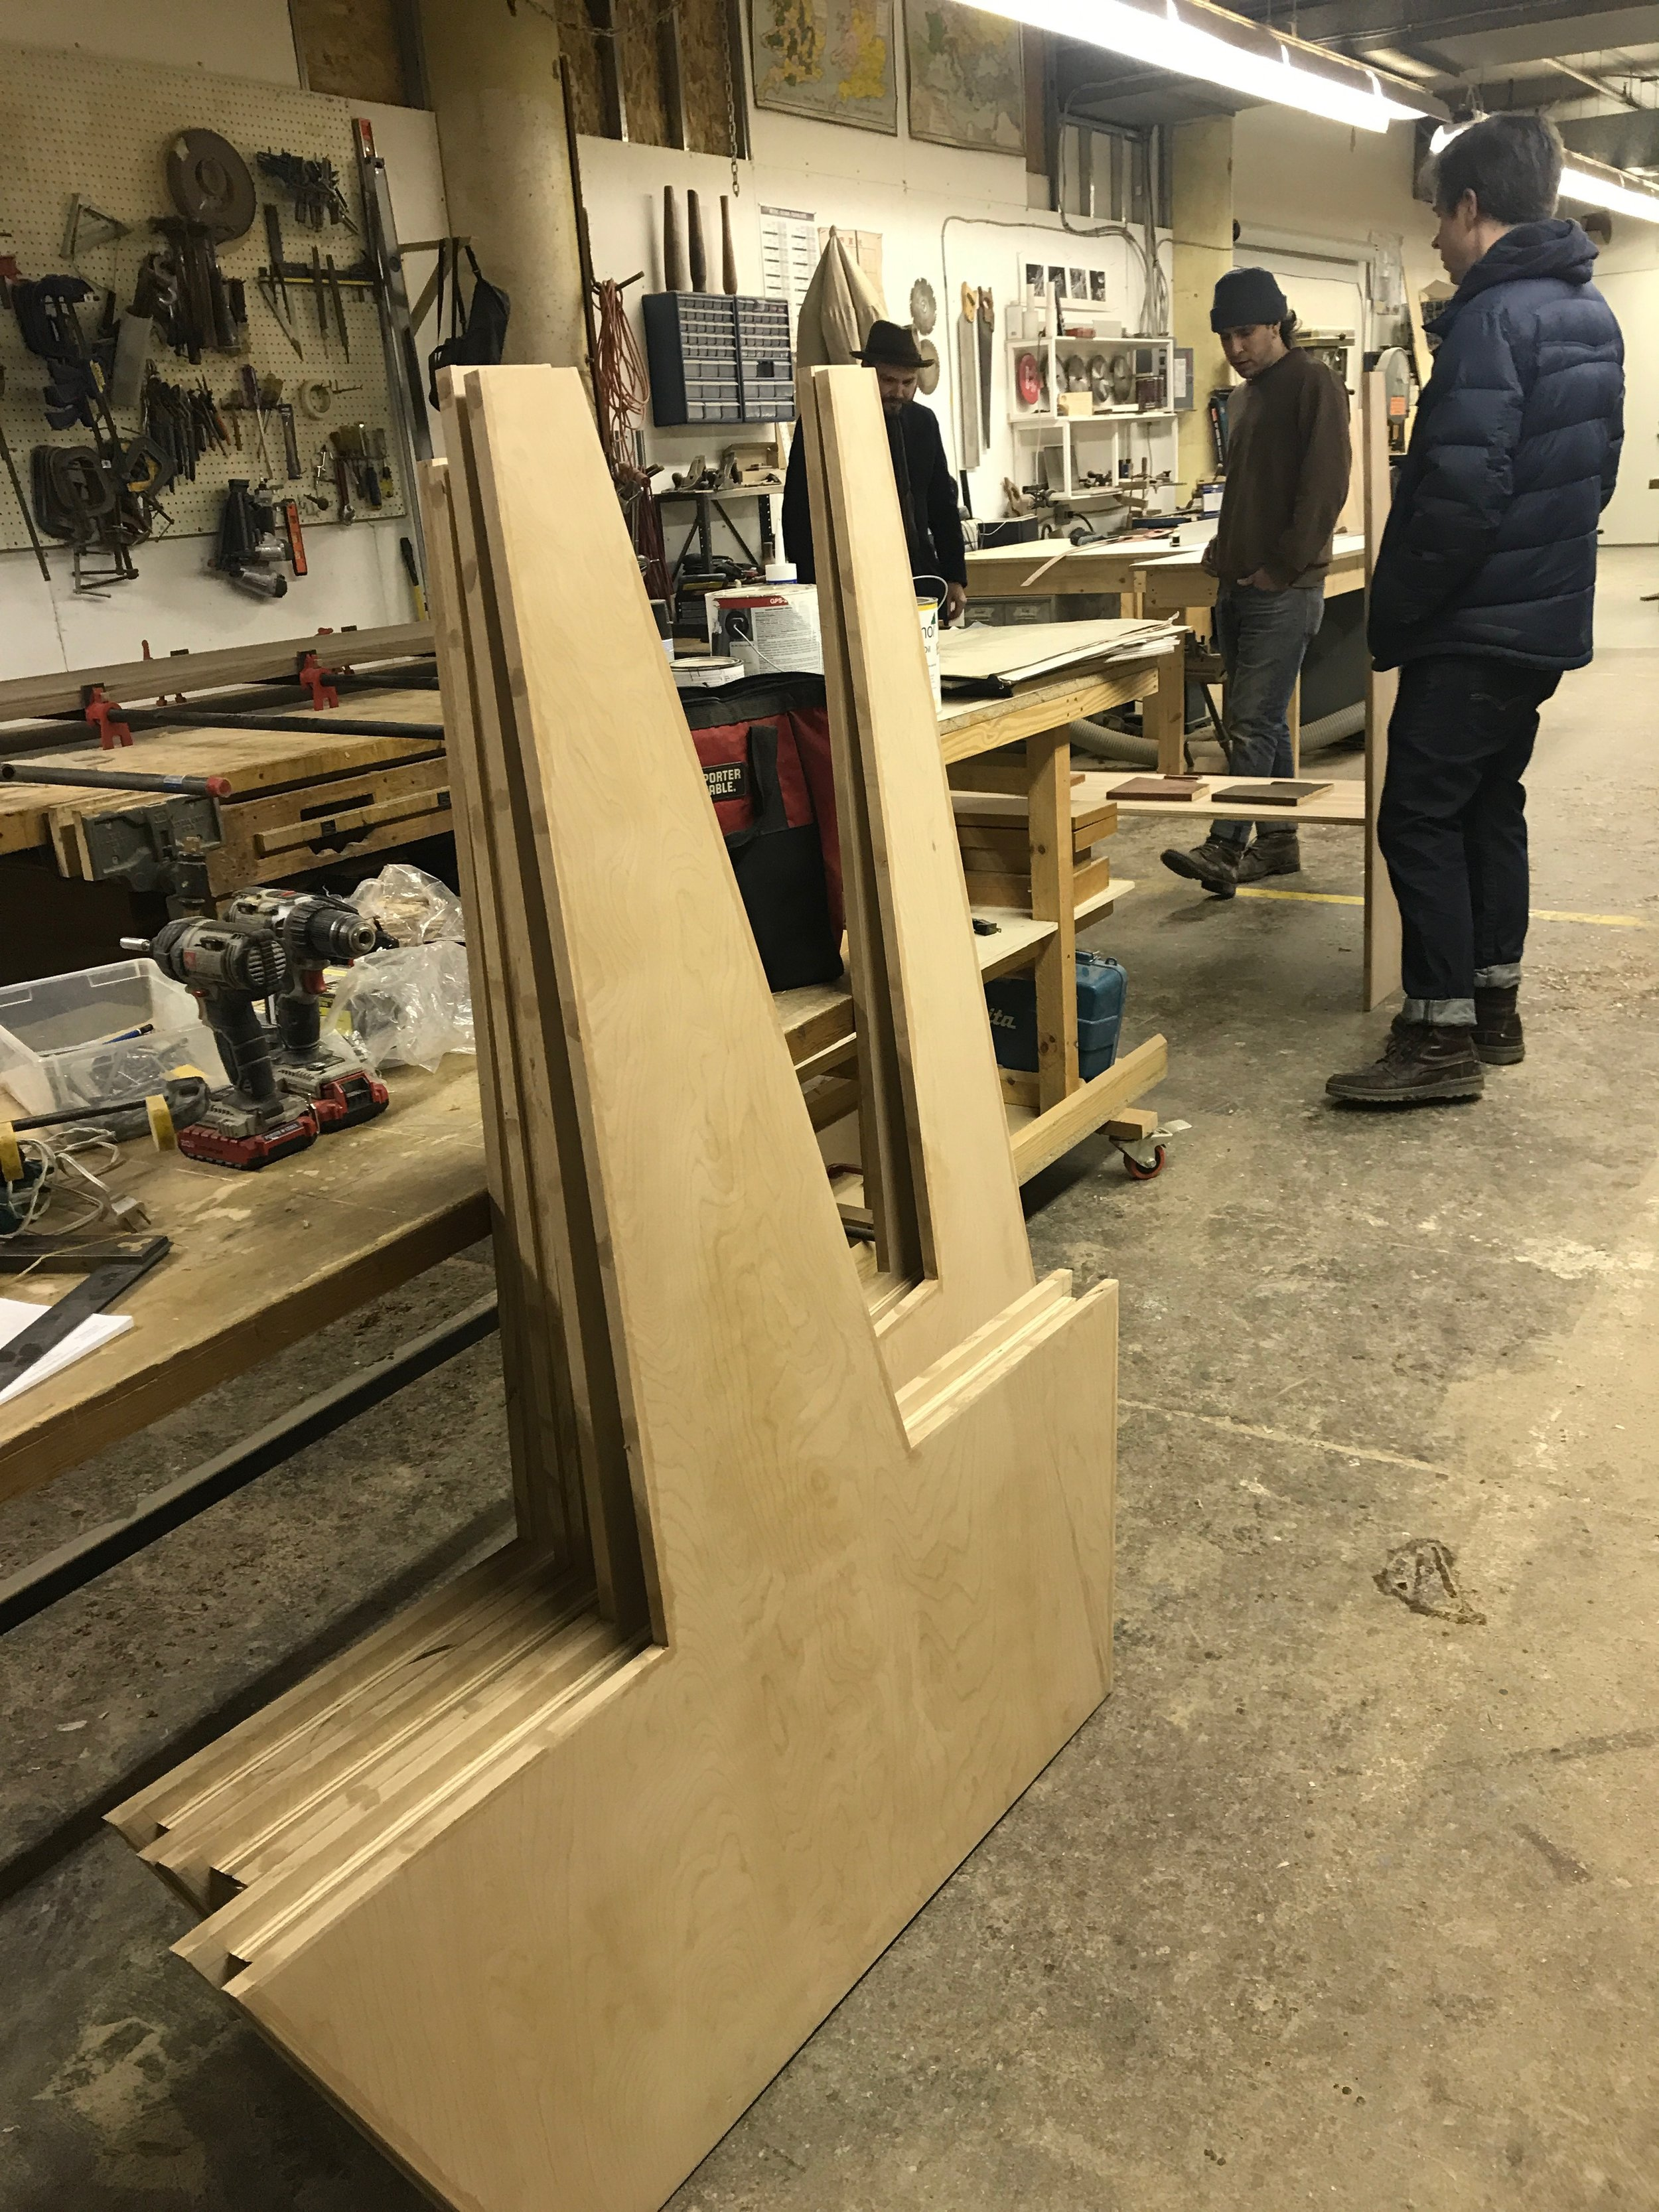 Meeting Steven the Carpenter at his workshop in Manchester to check out the booths, match stains, and discuss tabletops.